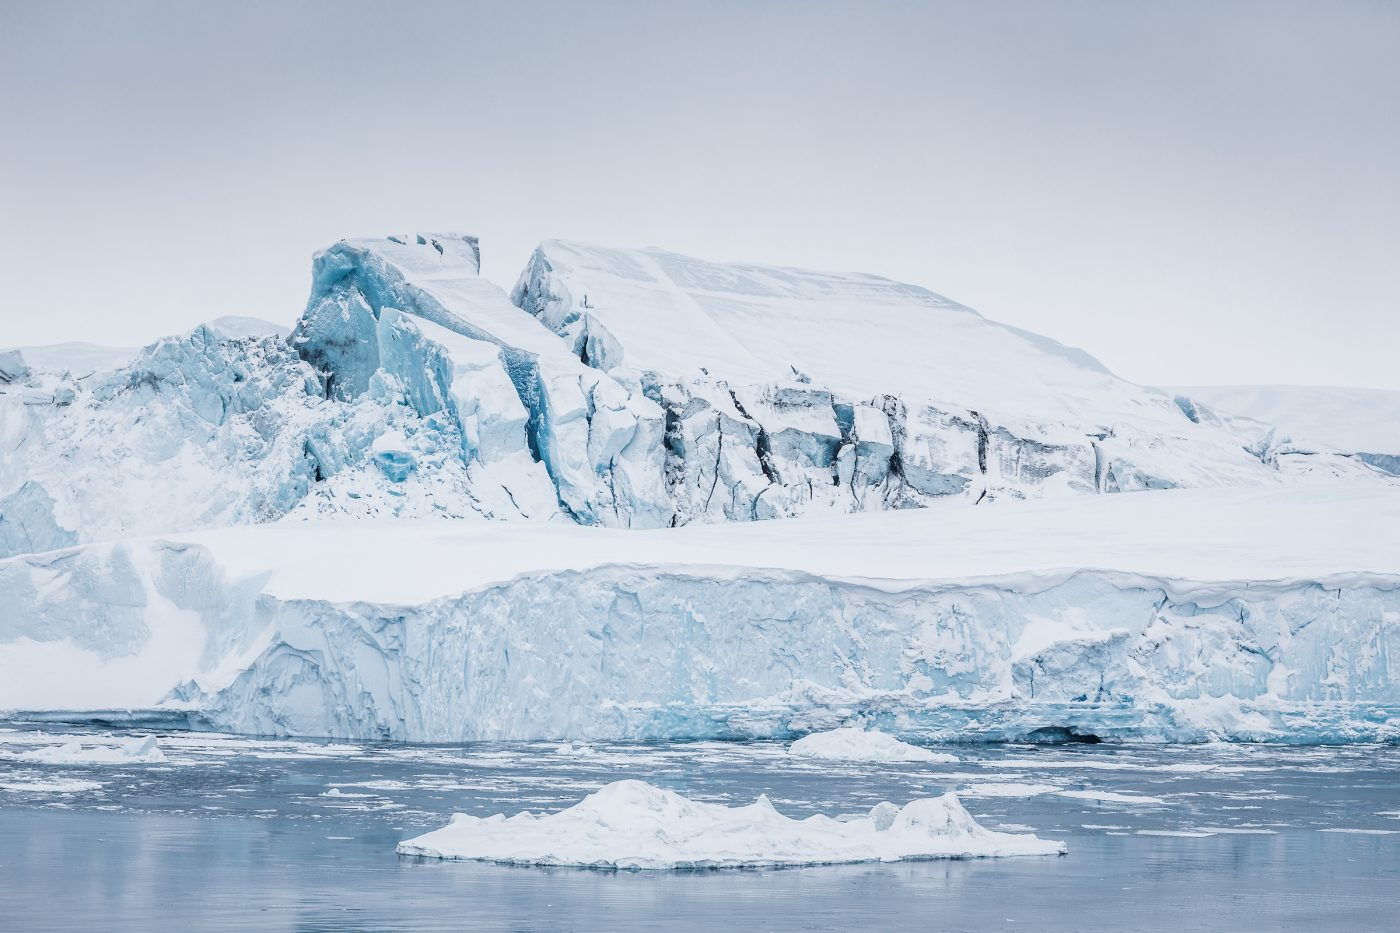 Massive iceberg grounded at the mouth of Ilulissat Icefjord. Photo by Samuel Letecheur, Visit Greenland